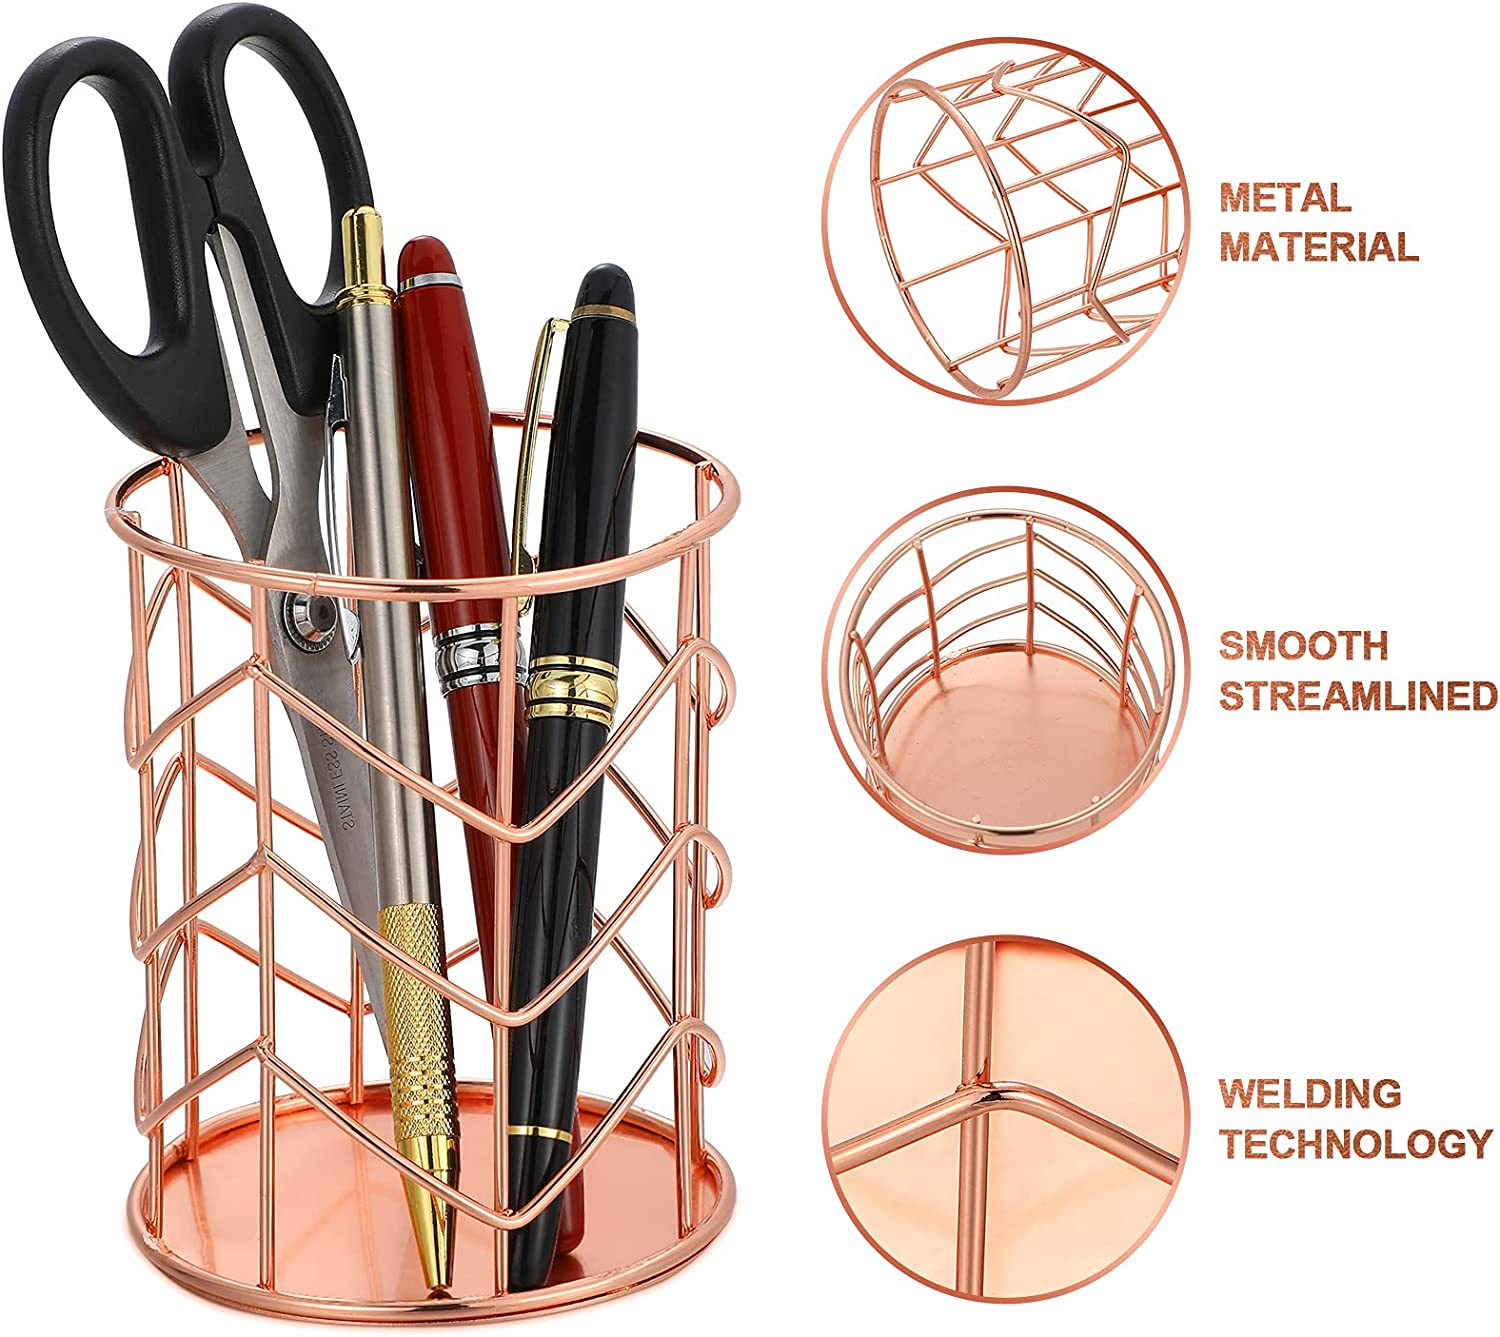 Rose Gold Office School Home Organizer Accessories Pencil Holder Paper Clip Dispenser Holder Magnetic Round Paper Clip Holder with Wire Metal Pencil Cup and 100 Pieces 28 mm Light Paper Clips